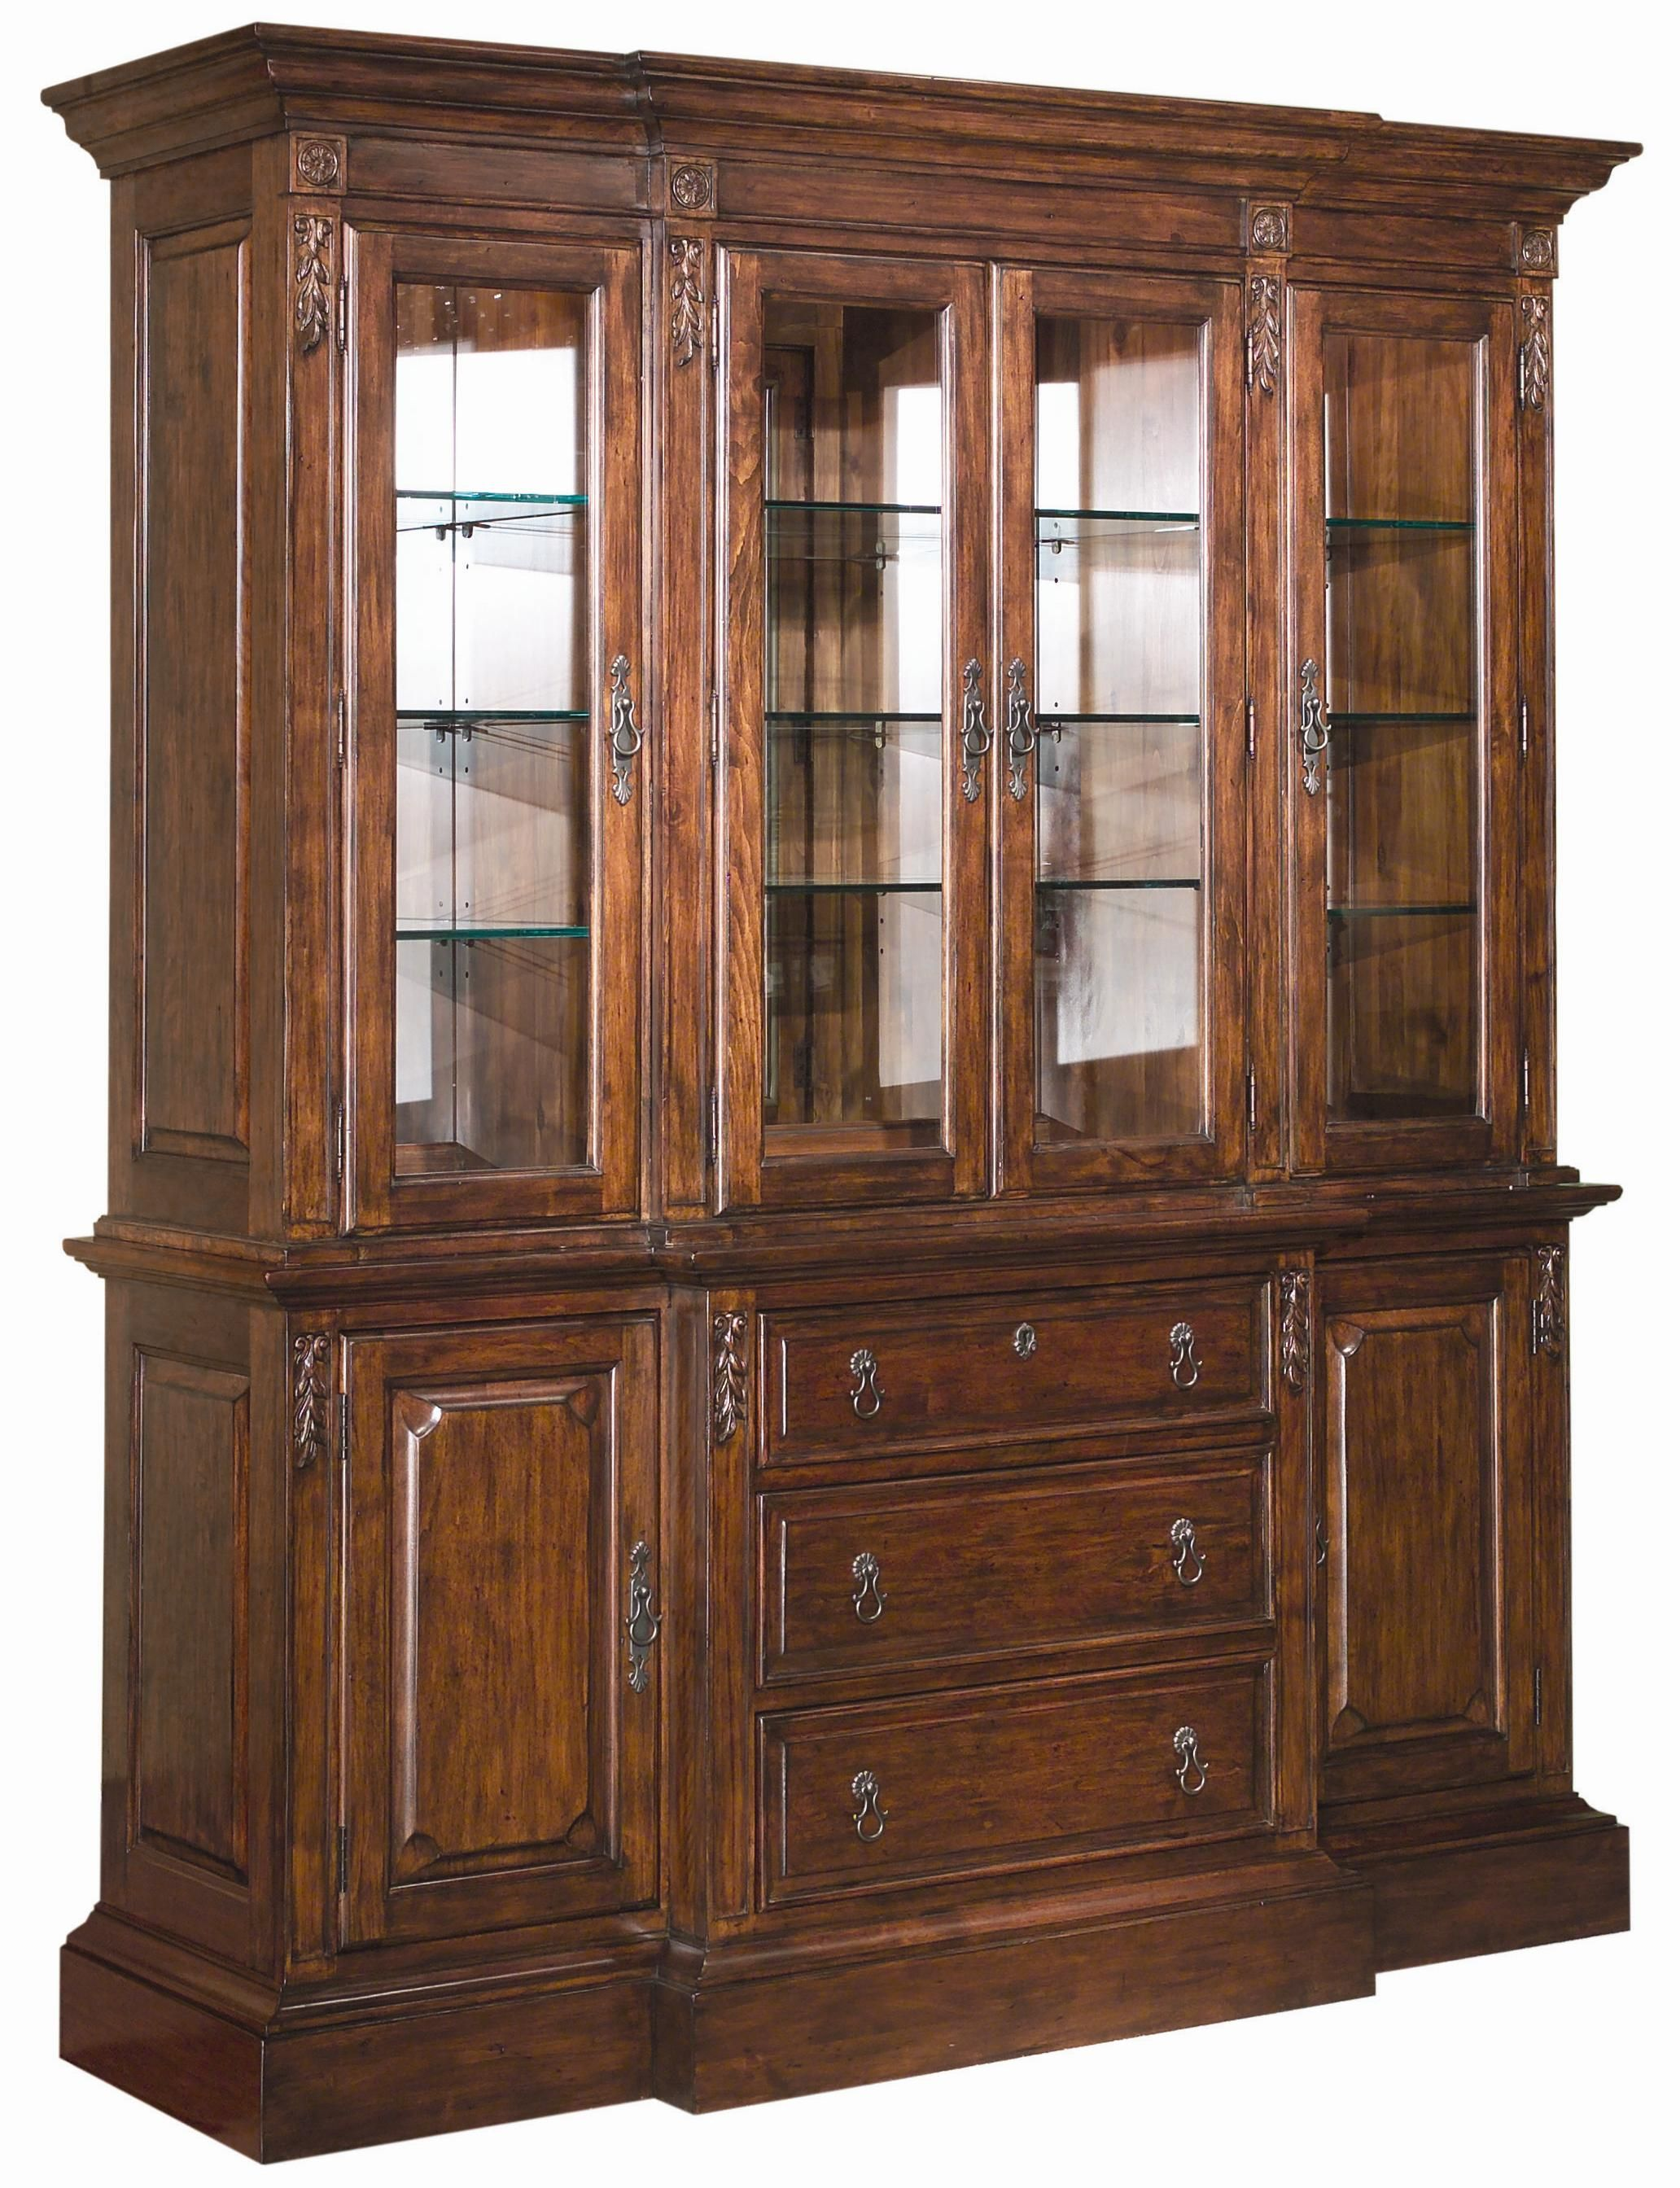 del img hutch teak woodworking furniture china cabinet design san cover